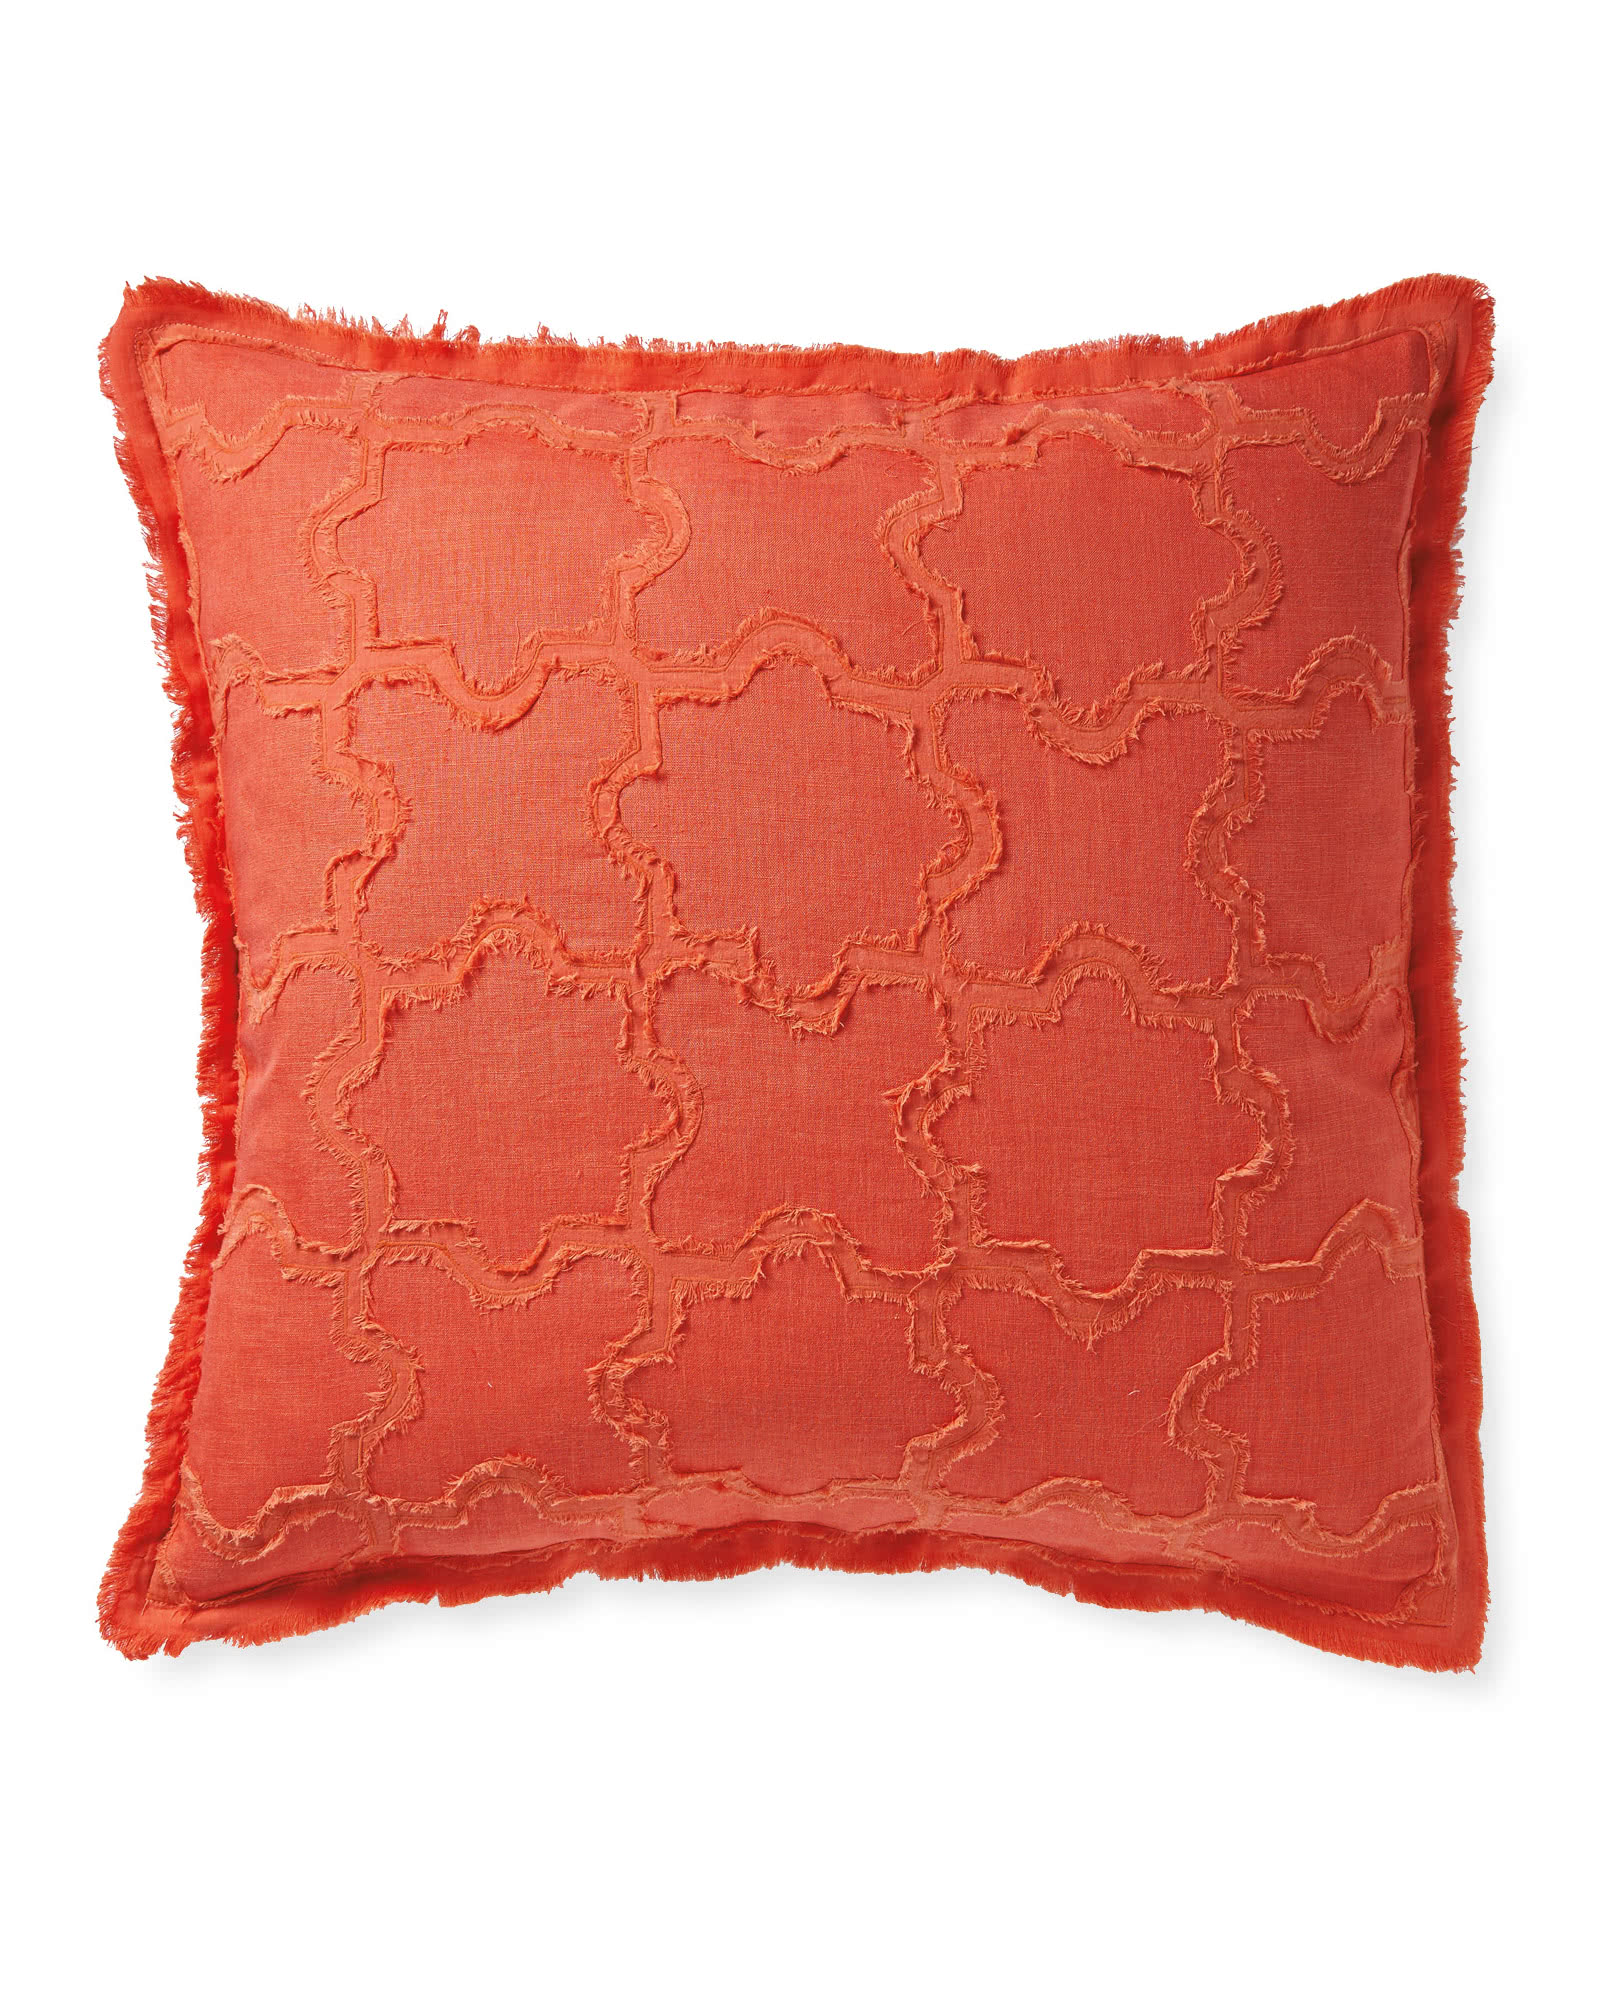 Barcelona Pillow Cover, Coral